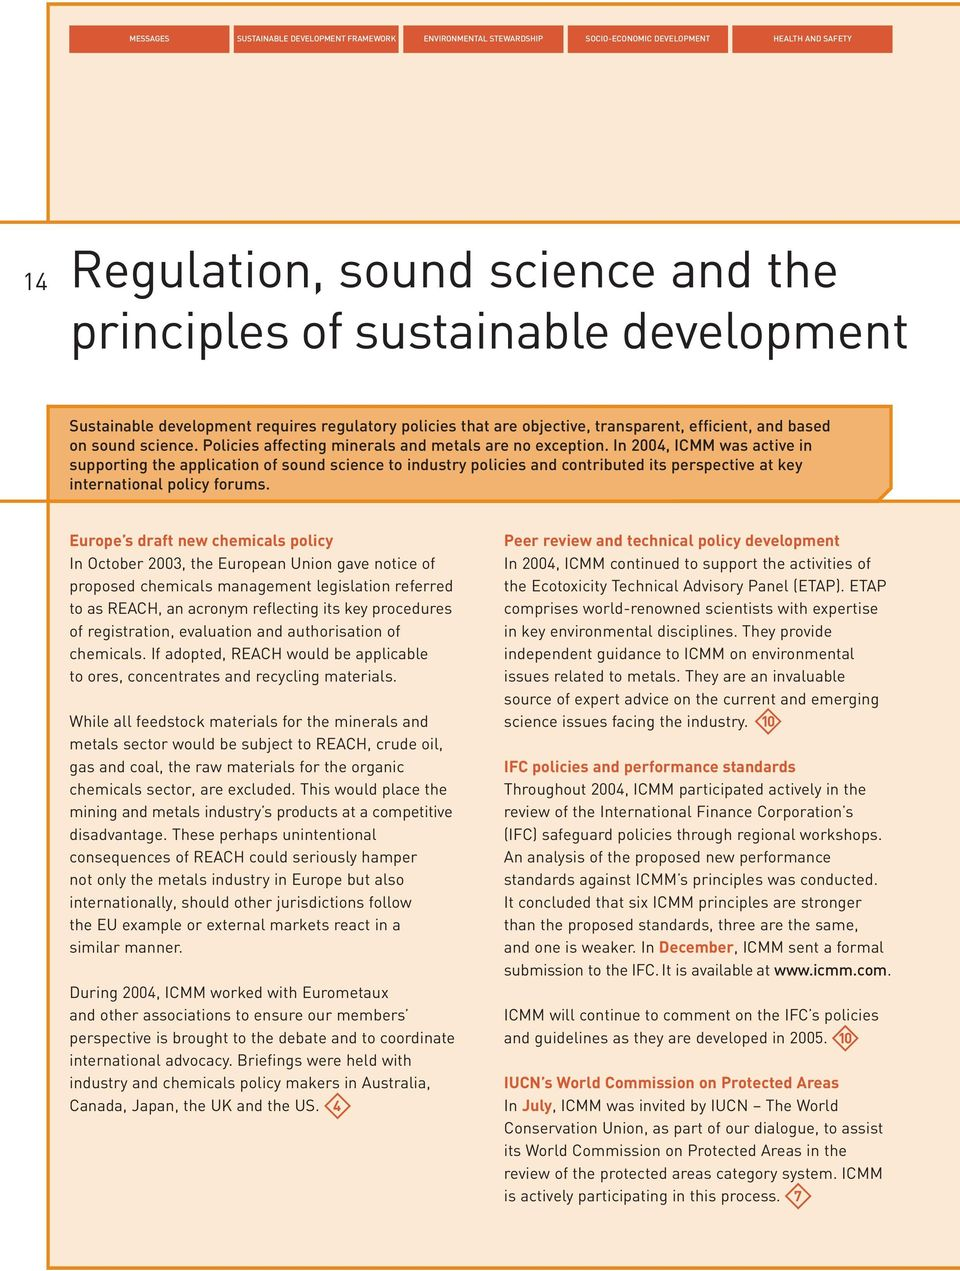 In 2004, ICMM was active in supporting the application of sound science to industry policies and contributed its perspective at key international policy forums.